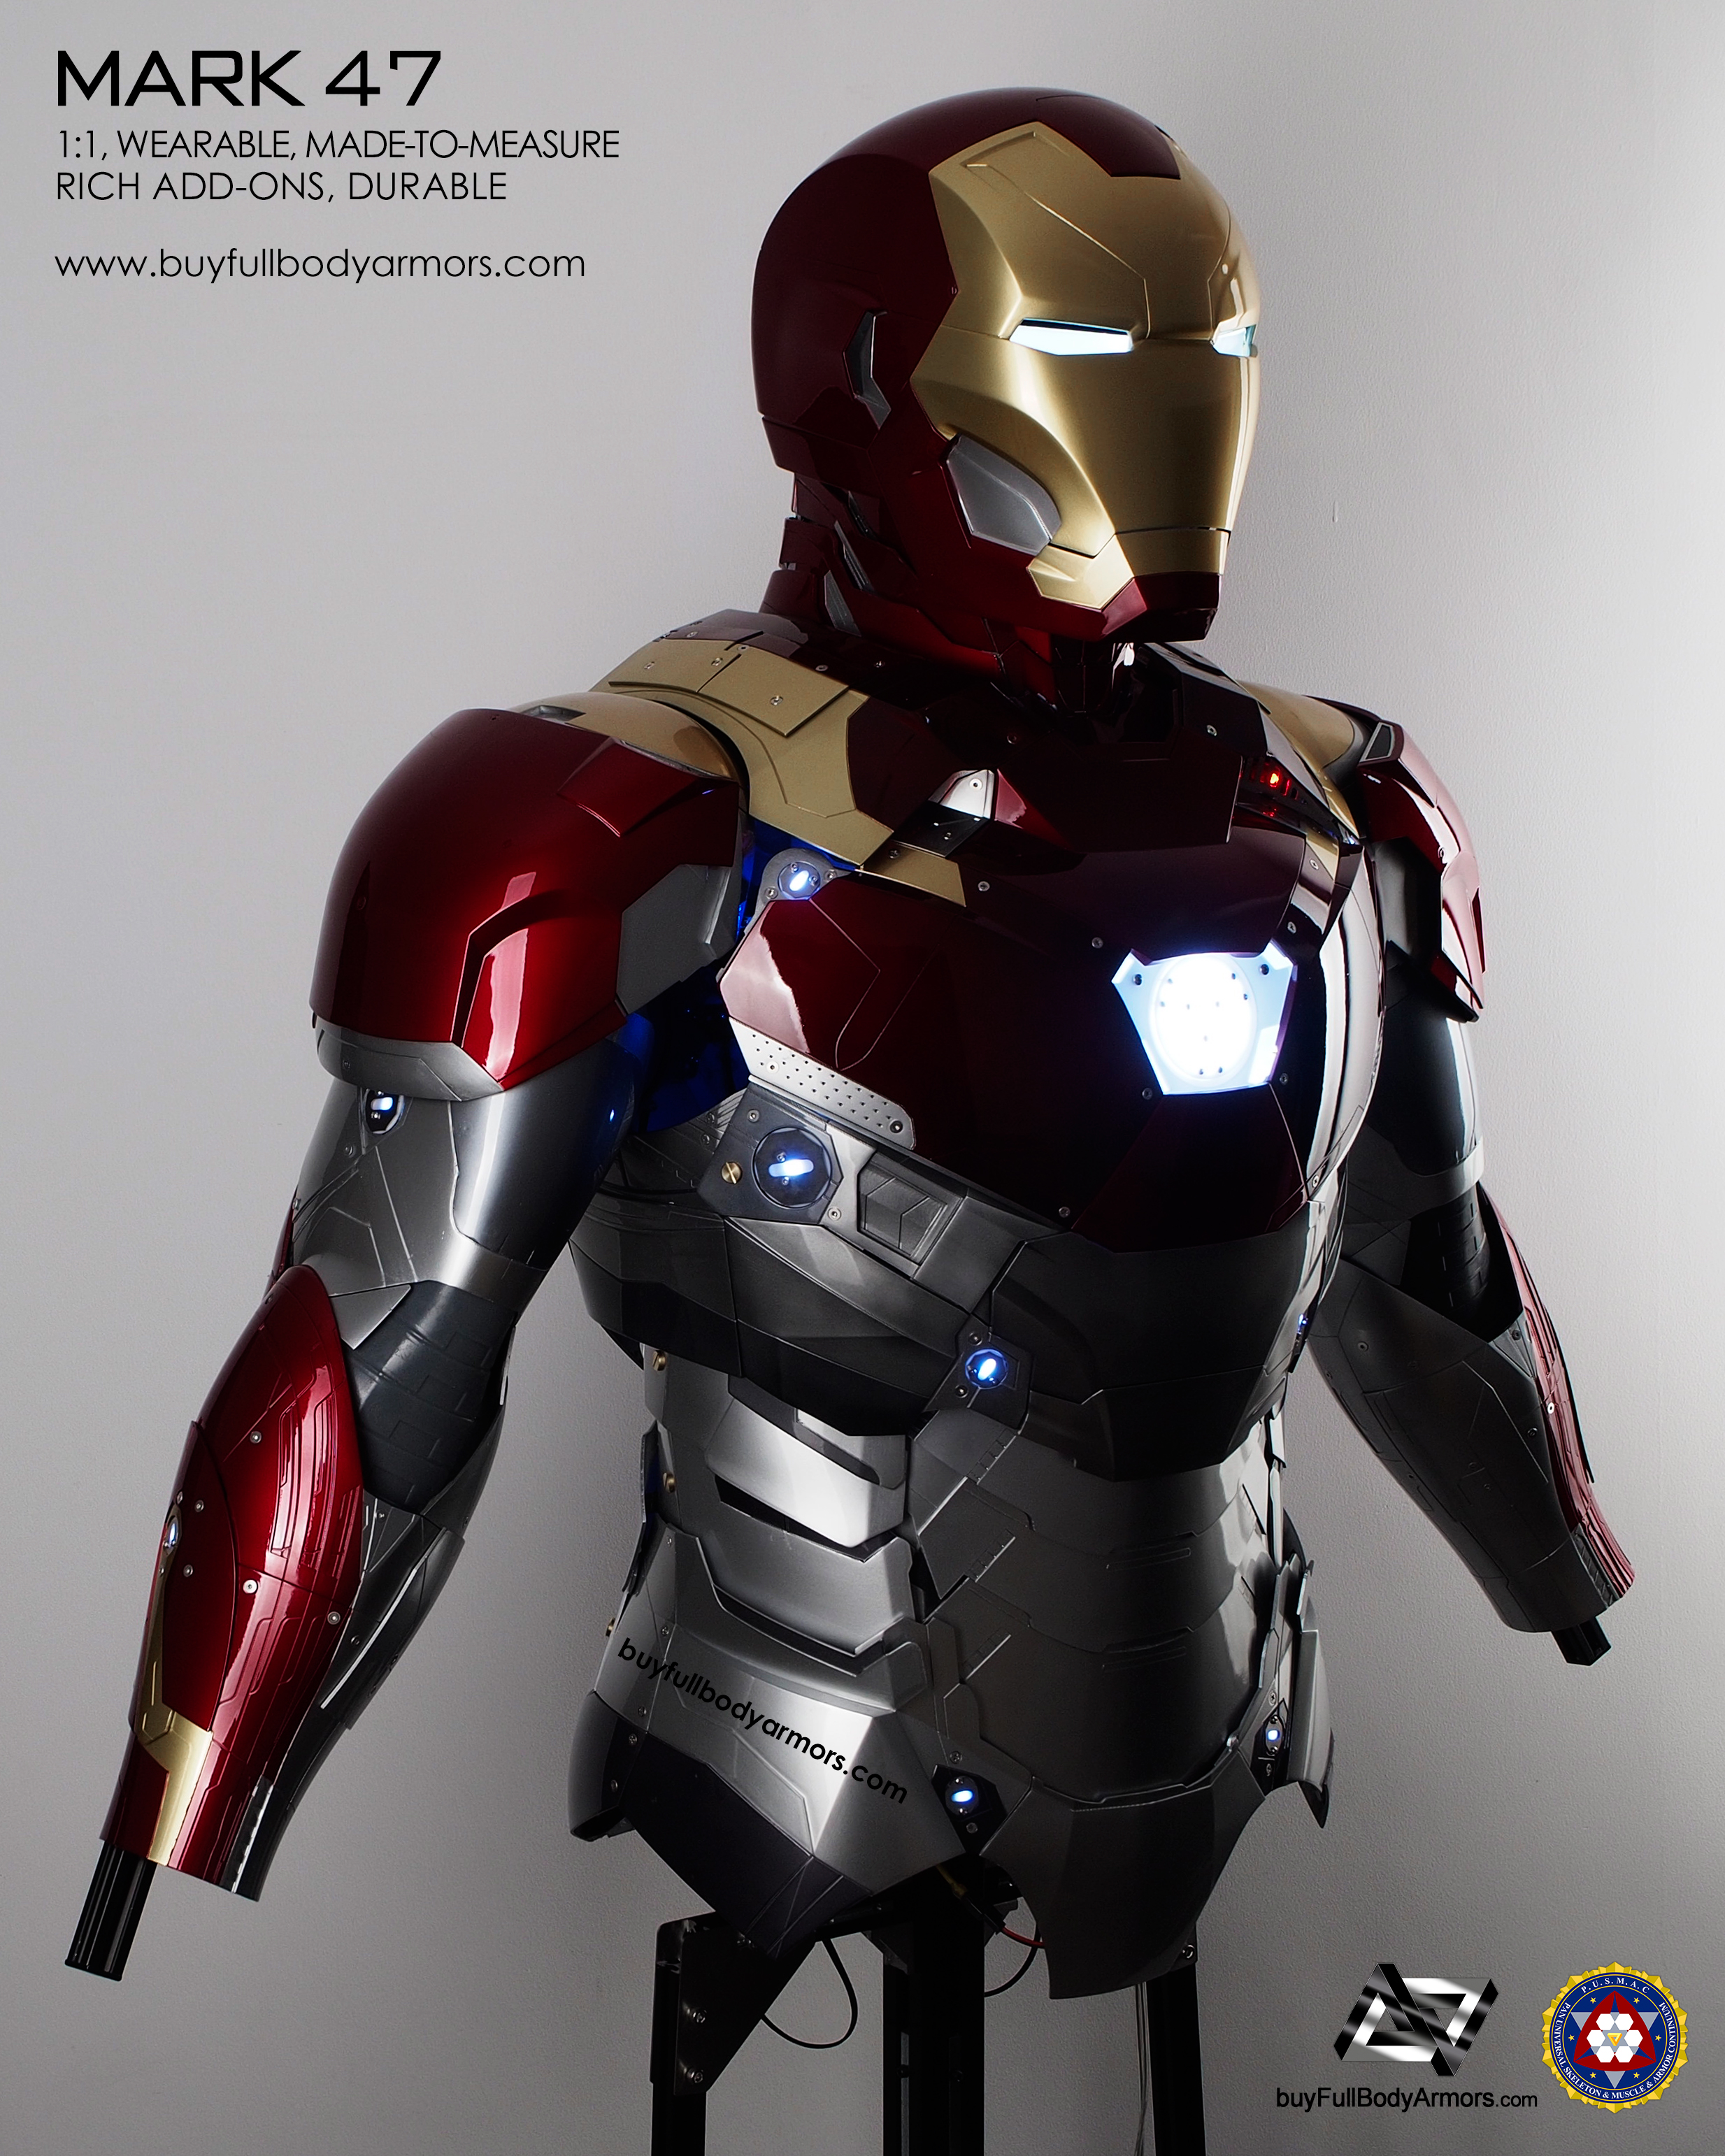 wearable_iron_man_mark_47_armor_costume_top_half_front